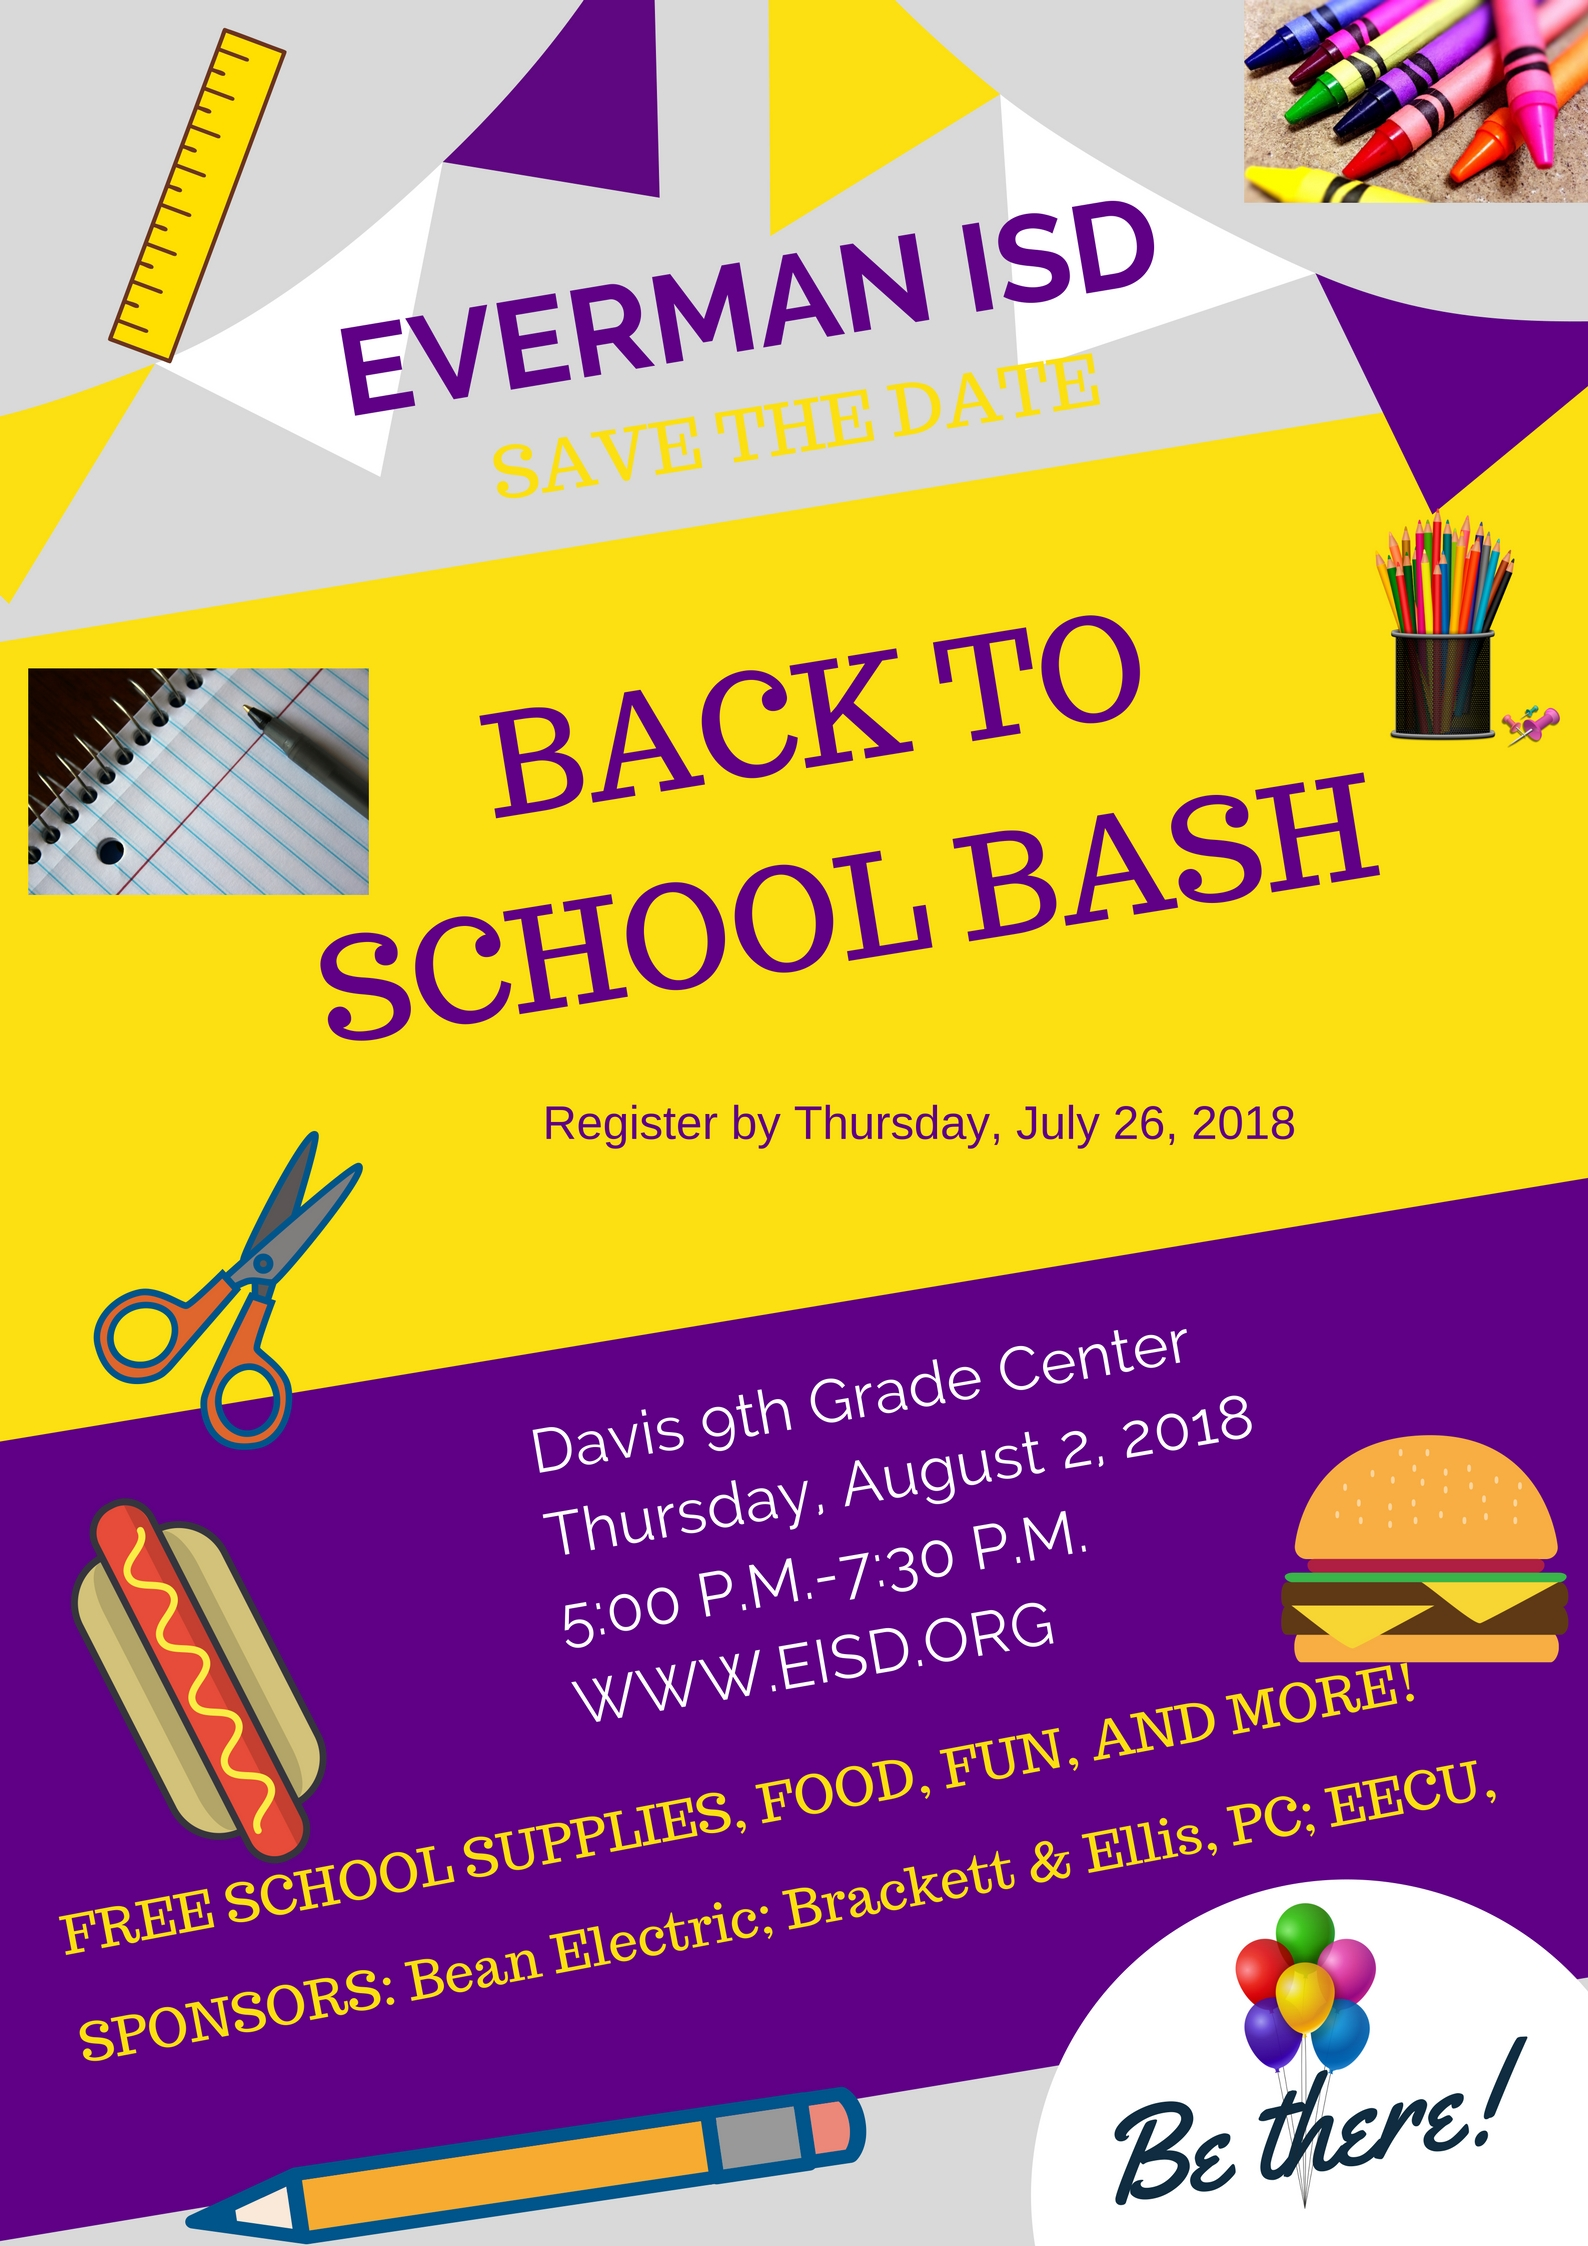 Back to school bash 2018 flyer.  Provides information about the bash on August 2, 2018